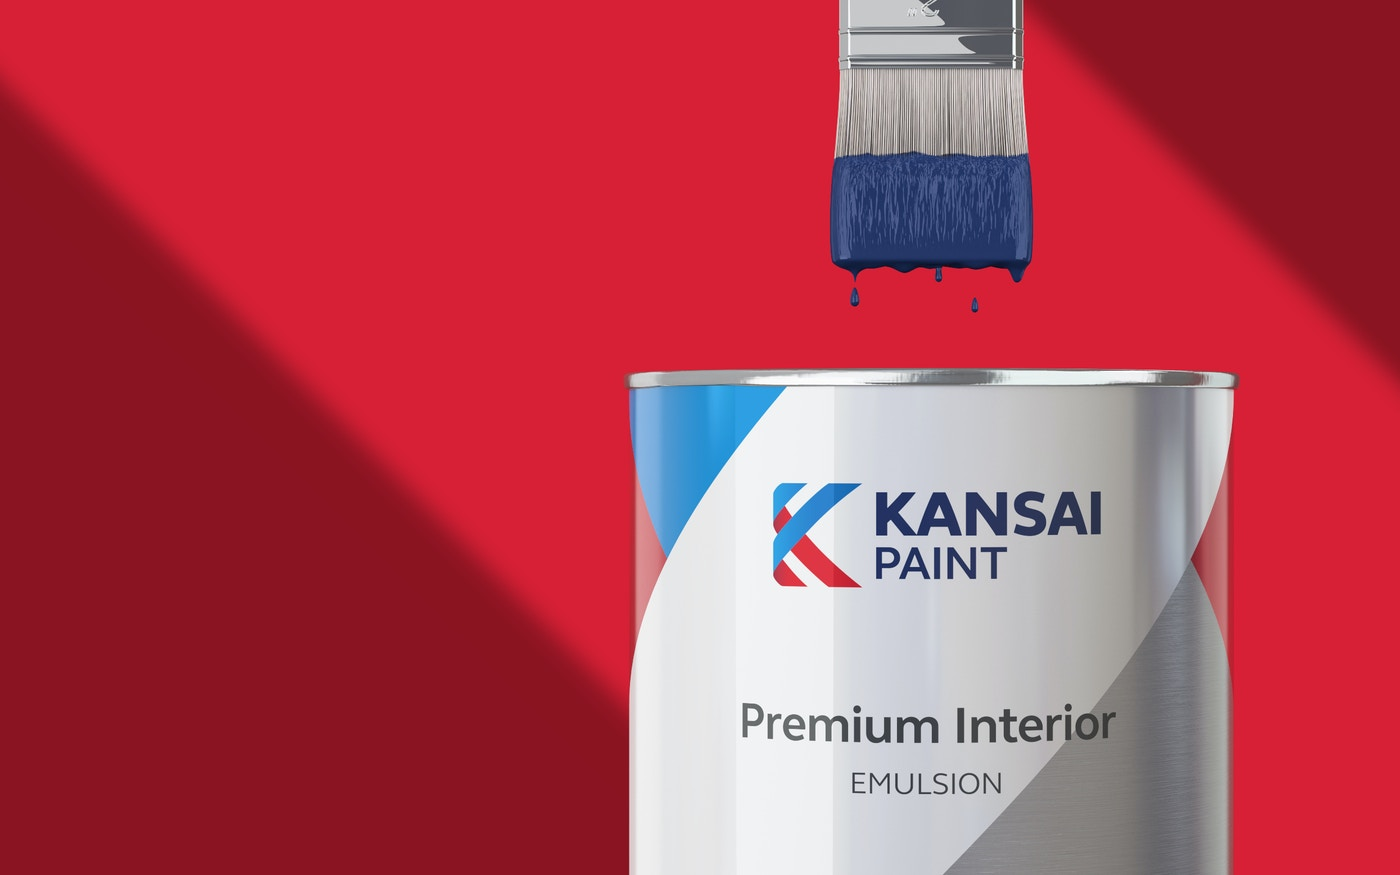 Kansai Paint branded can